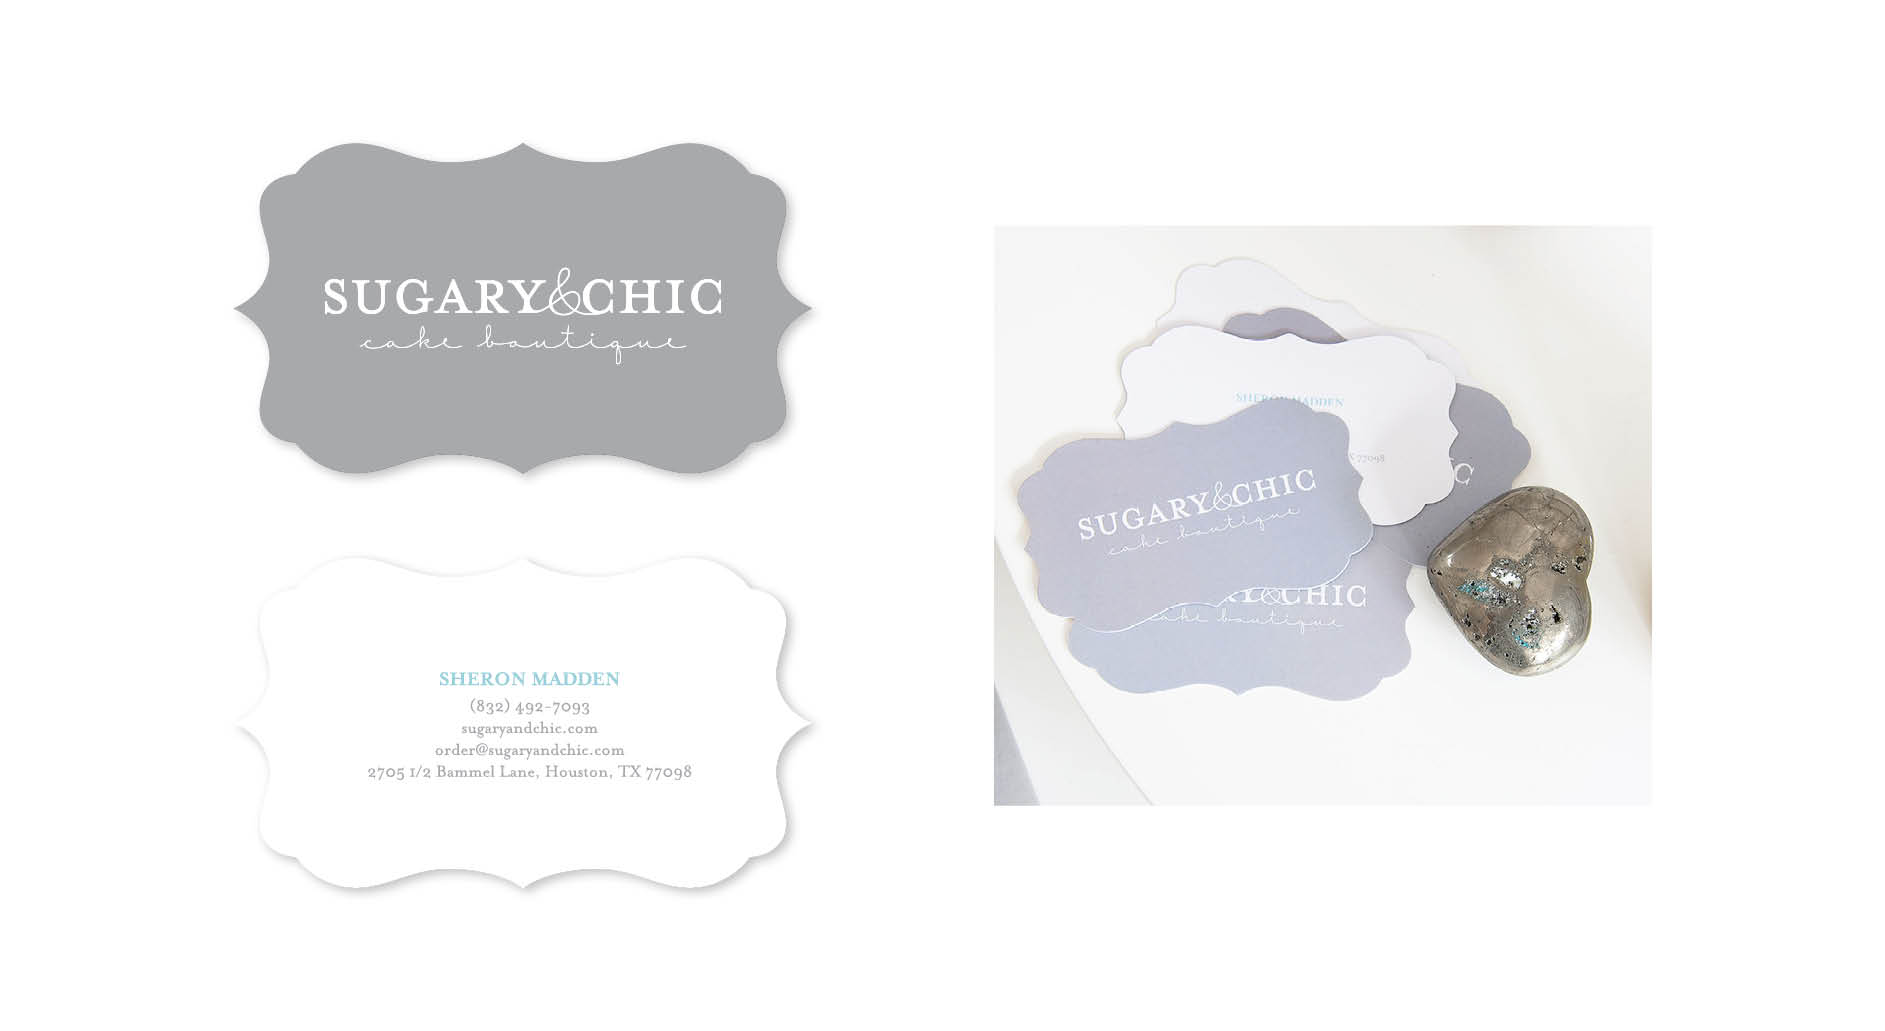 Sugary & Chic Business Cards